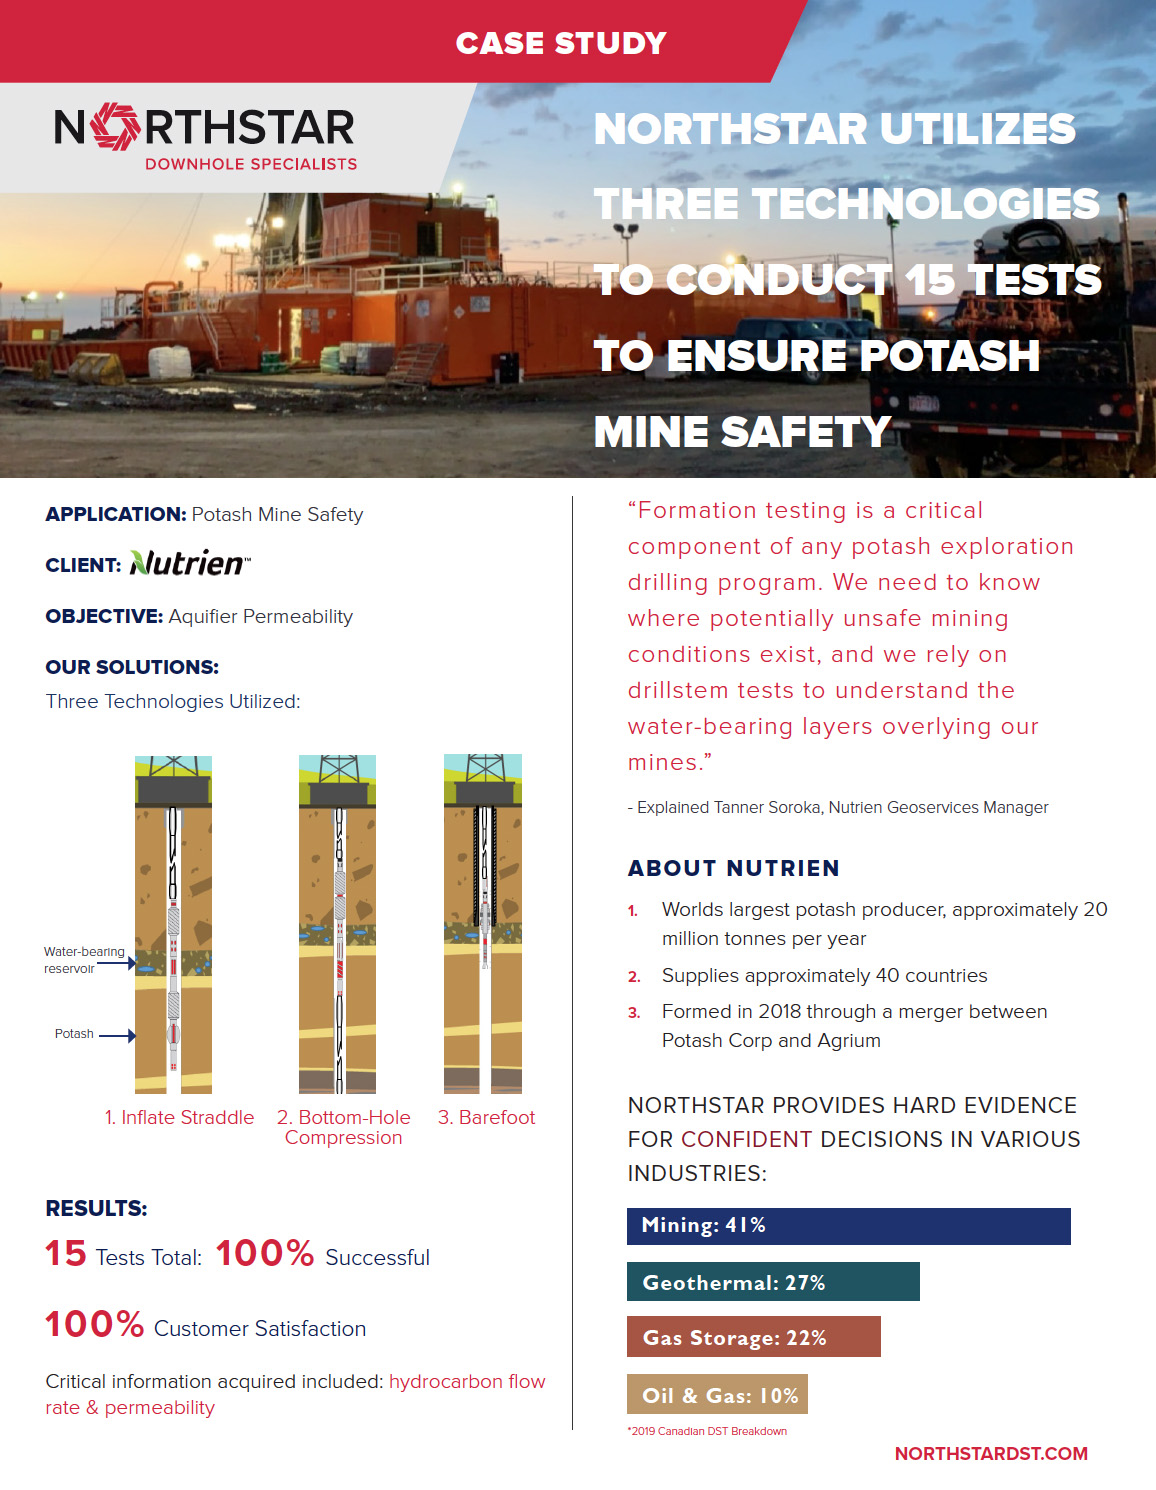 Northstar DST - Downhole Testing Specialists